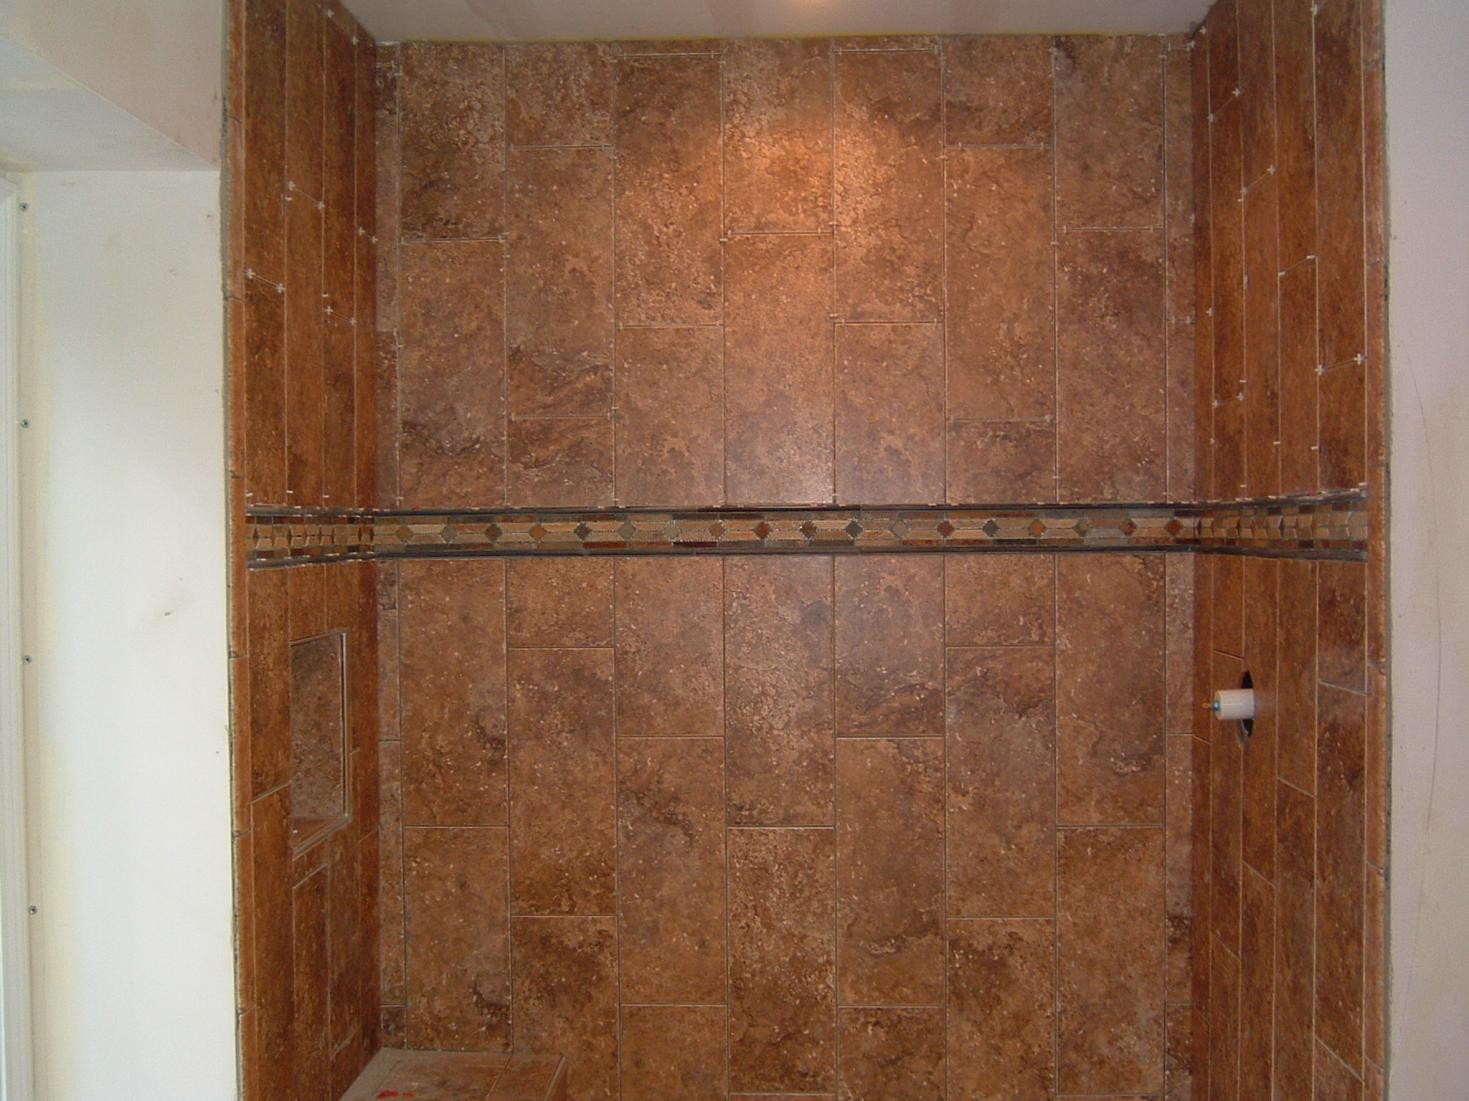 How To Support 2nd Row Of Tiles On Shower Walls Over Redguard Tiling Contractor Talk